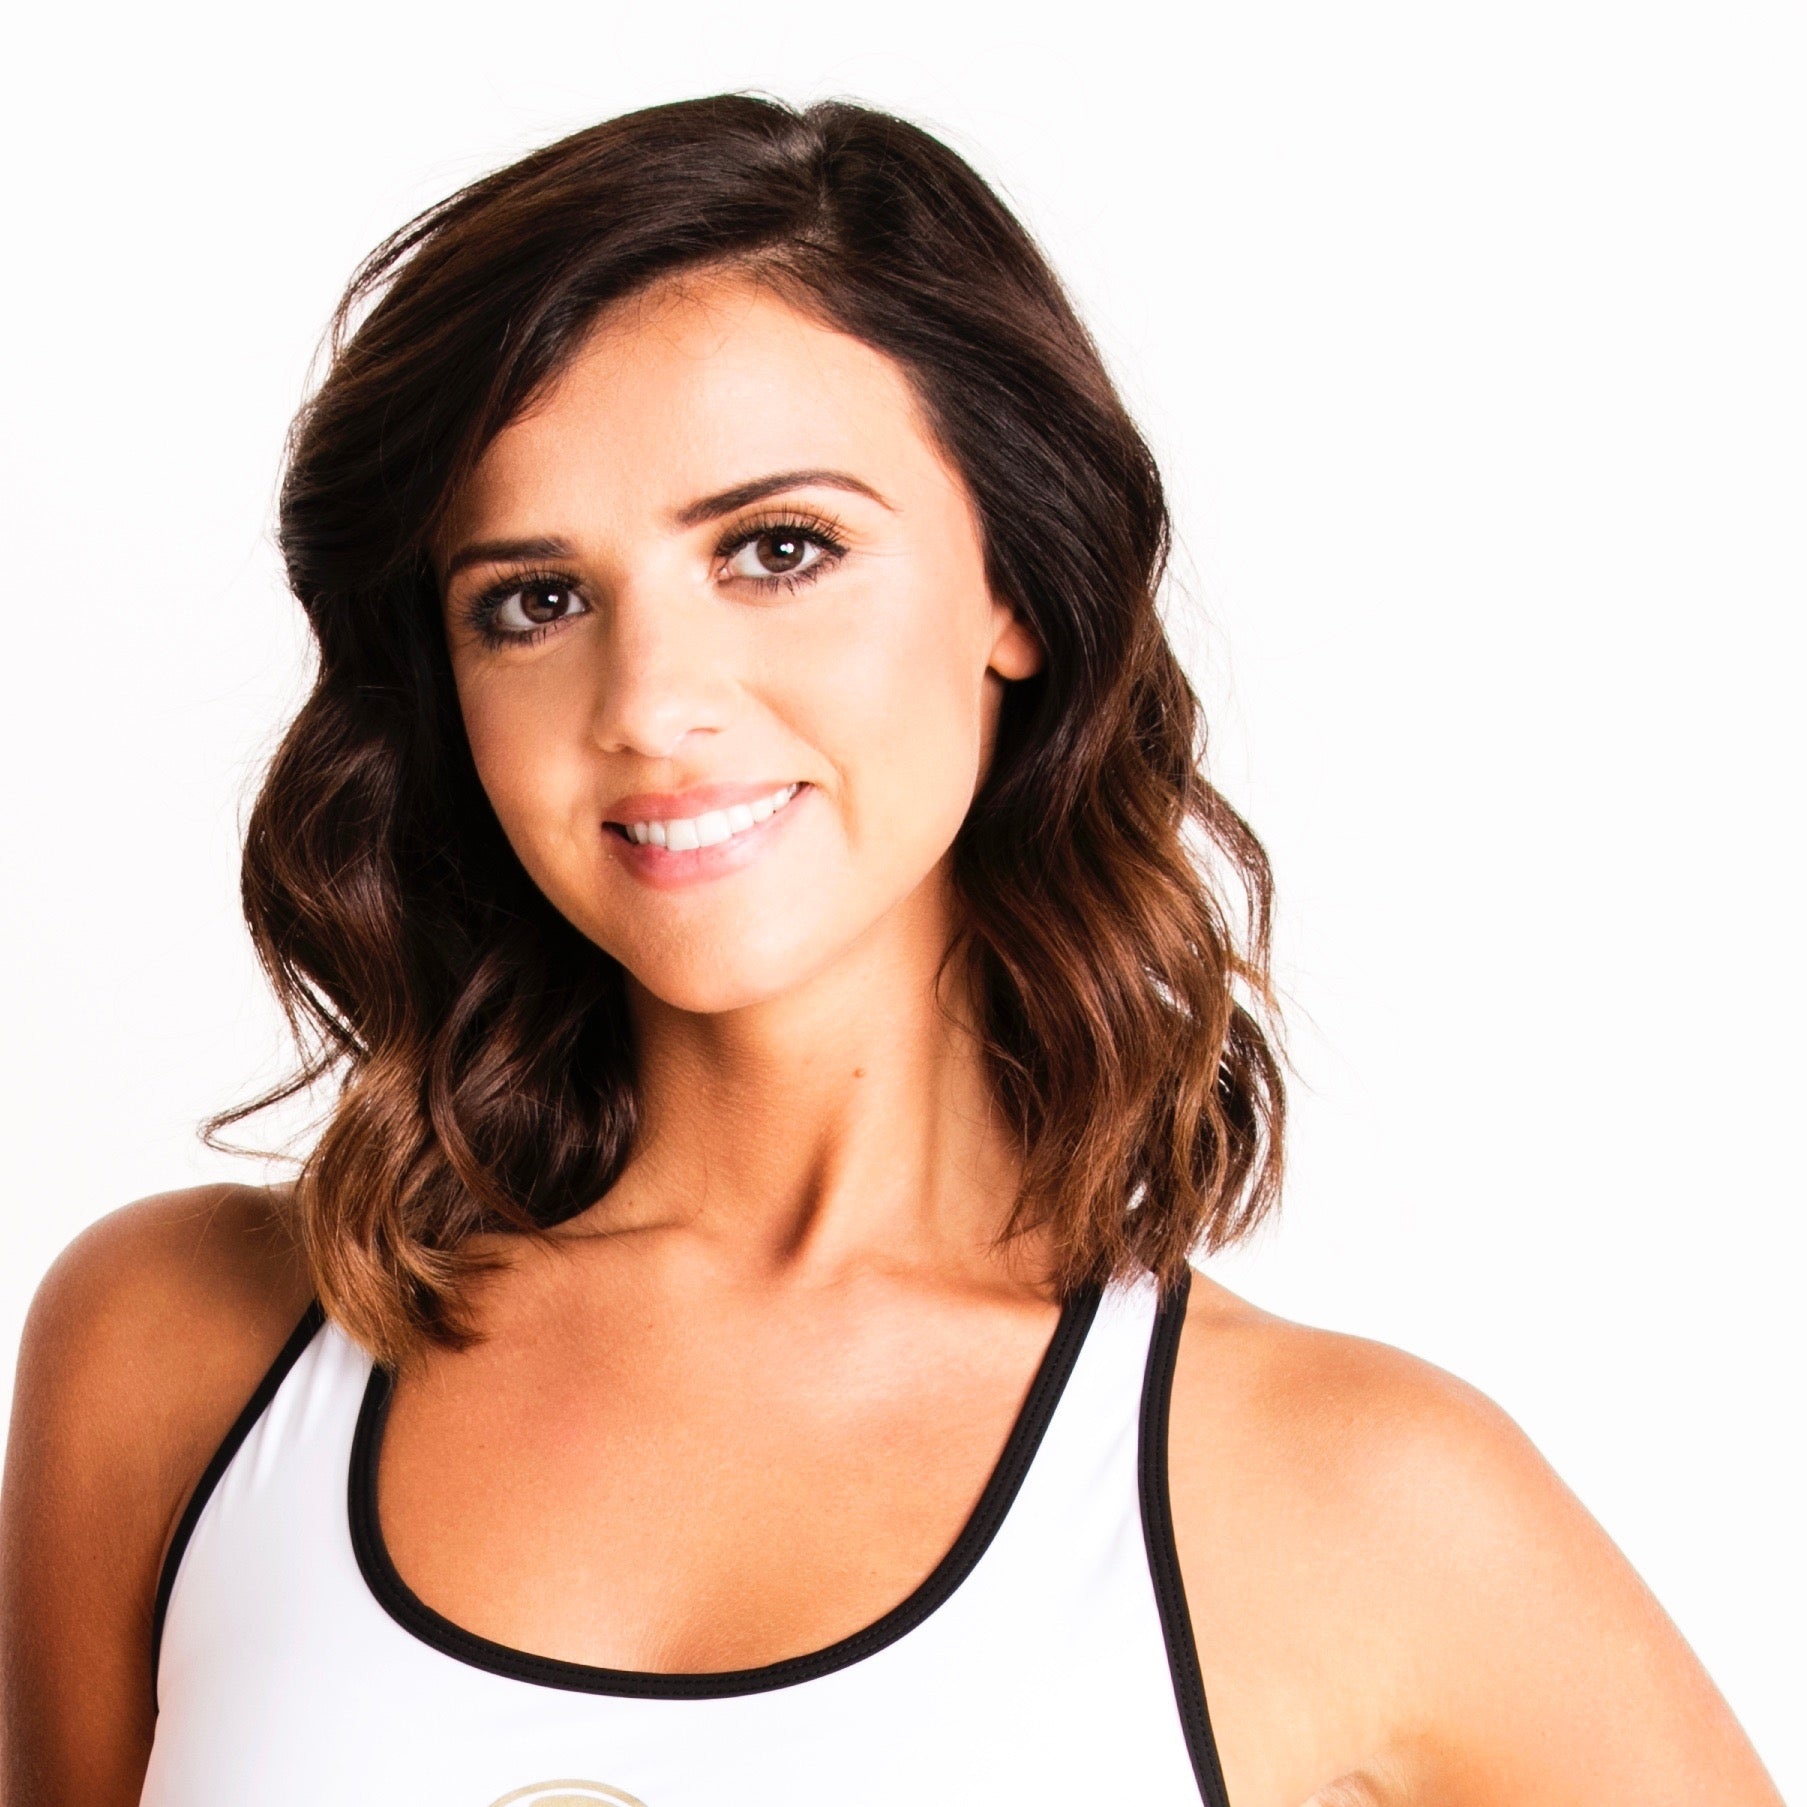 Lucy mecklenburgh is sweaty and beautiful nudes (87 images)